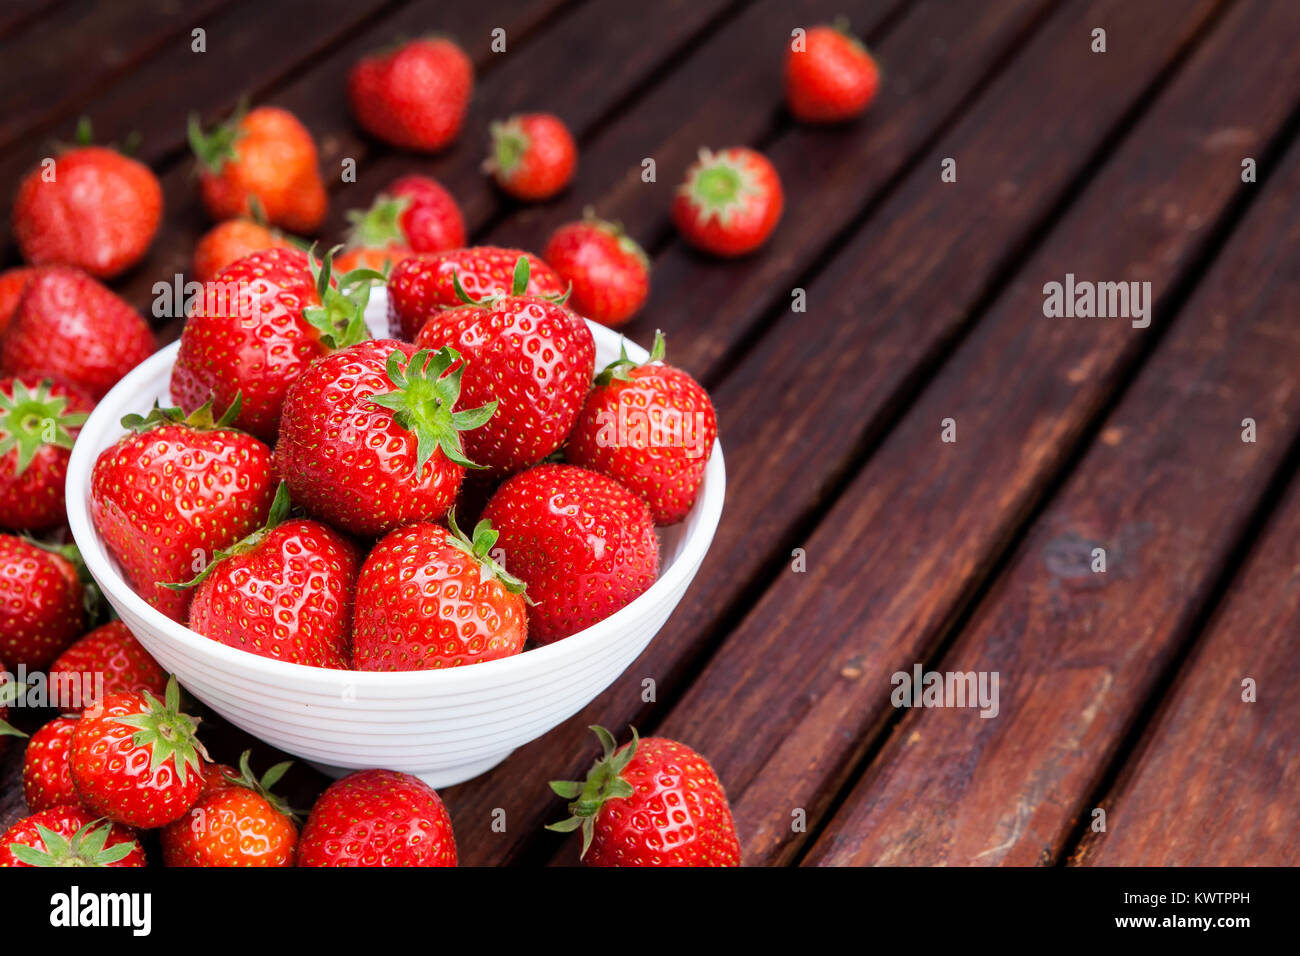 Strawberry in bowl on wooden table. Copy space - Stock Image